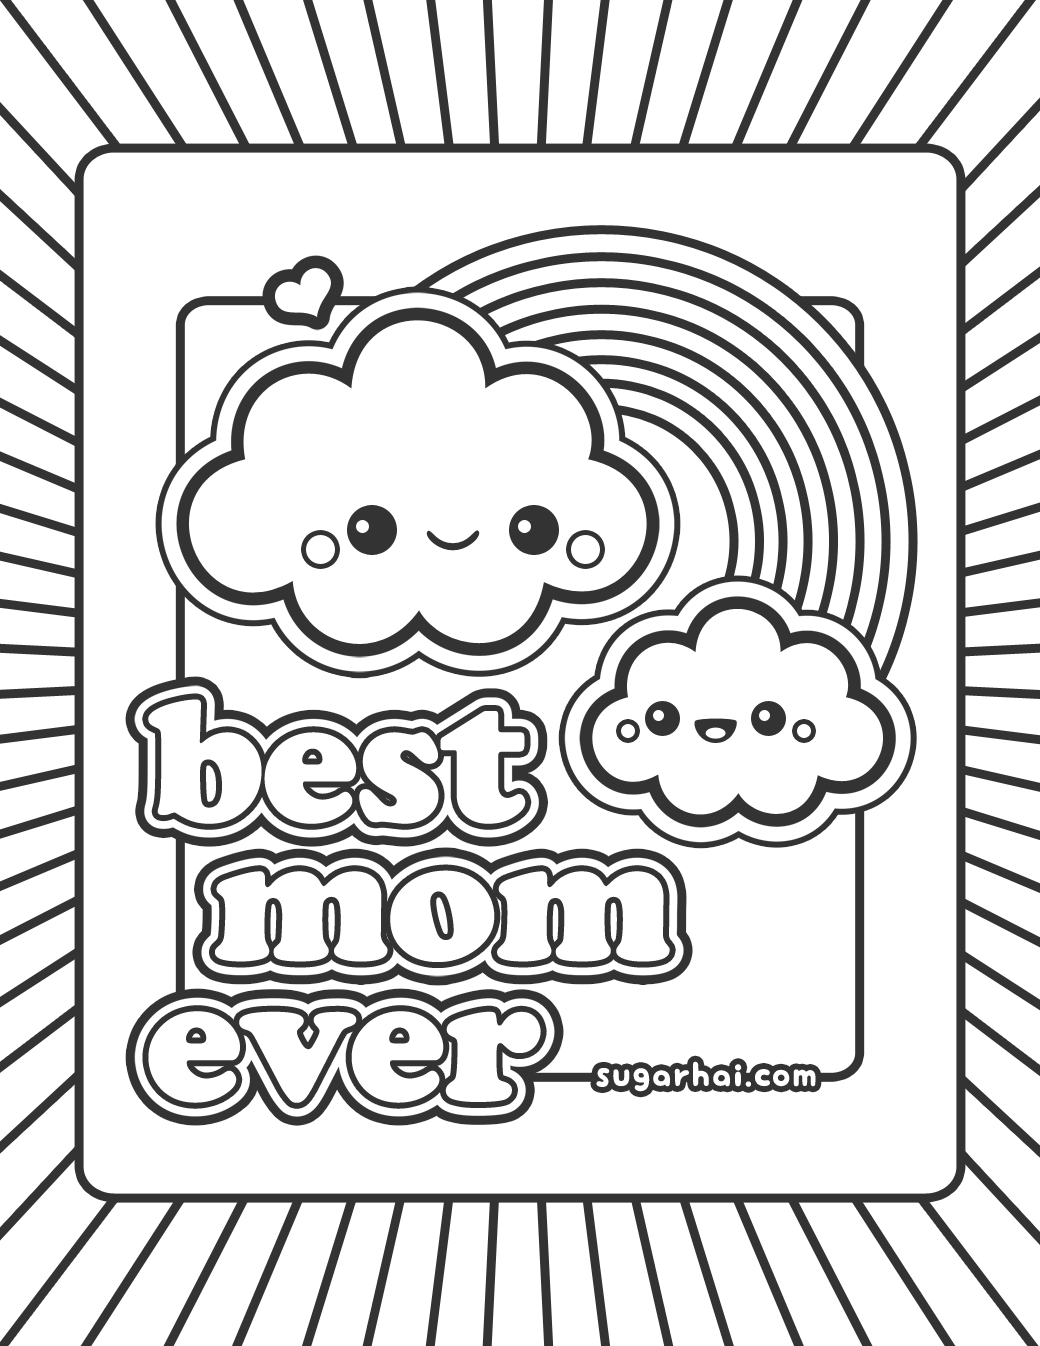 Free Best Mom Ever Coloring Page Mom Coloring Pages Halloween Coloring Pages Coloring Pages